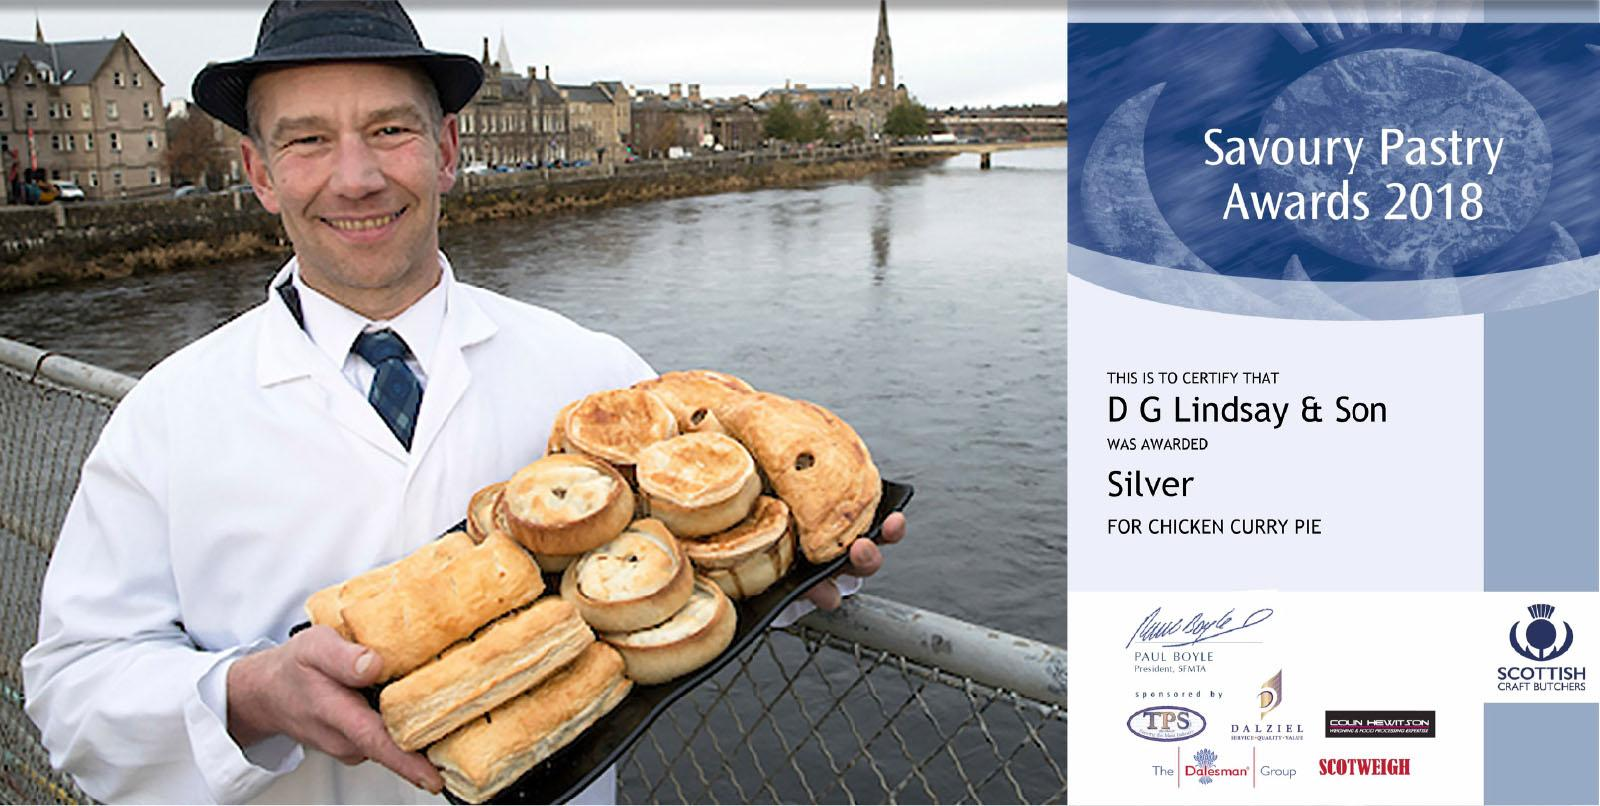 Savoury Pastry Awards 2018 - Silver - Two